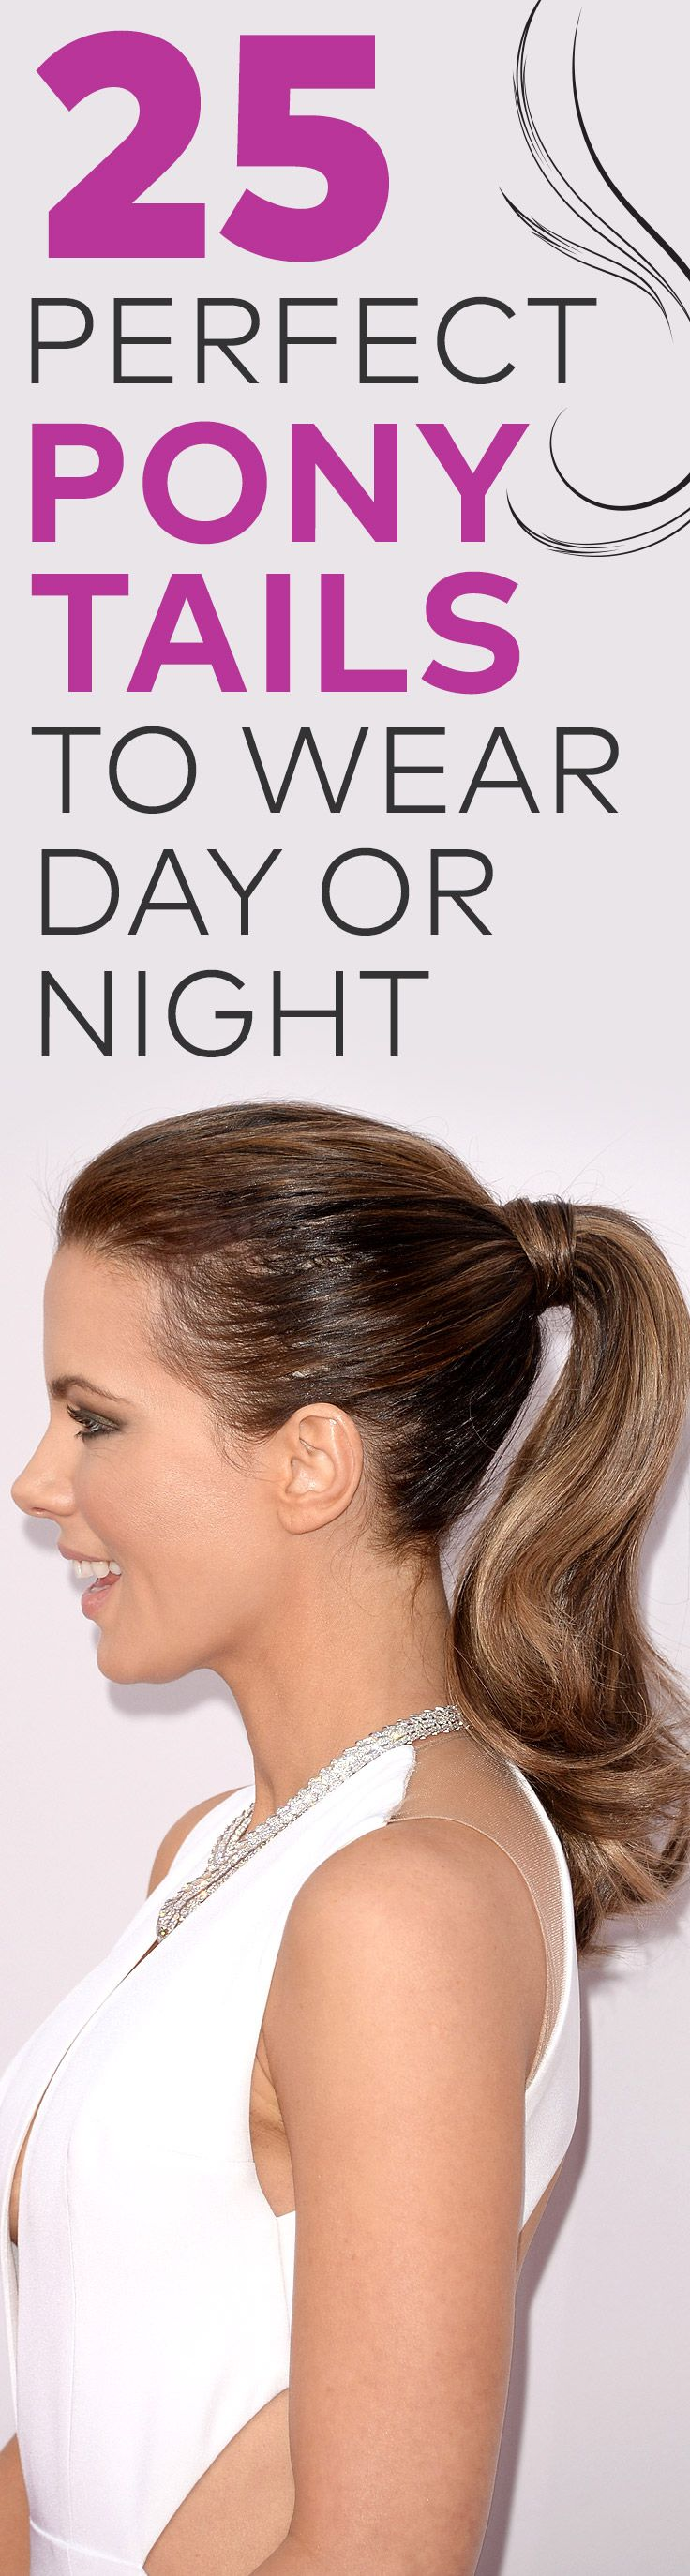 25 Perfect Ponytails to Wear Day or Night: If you're like us, you probably have quite a few resolutions to keep this year. But whether you're resolving to hit the gym more or up your beauty game, we rounded up 25 stylish ponytails to keep you looking good while achieving your goals.